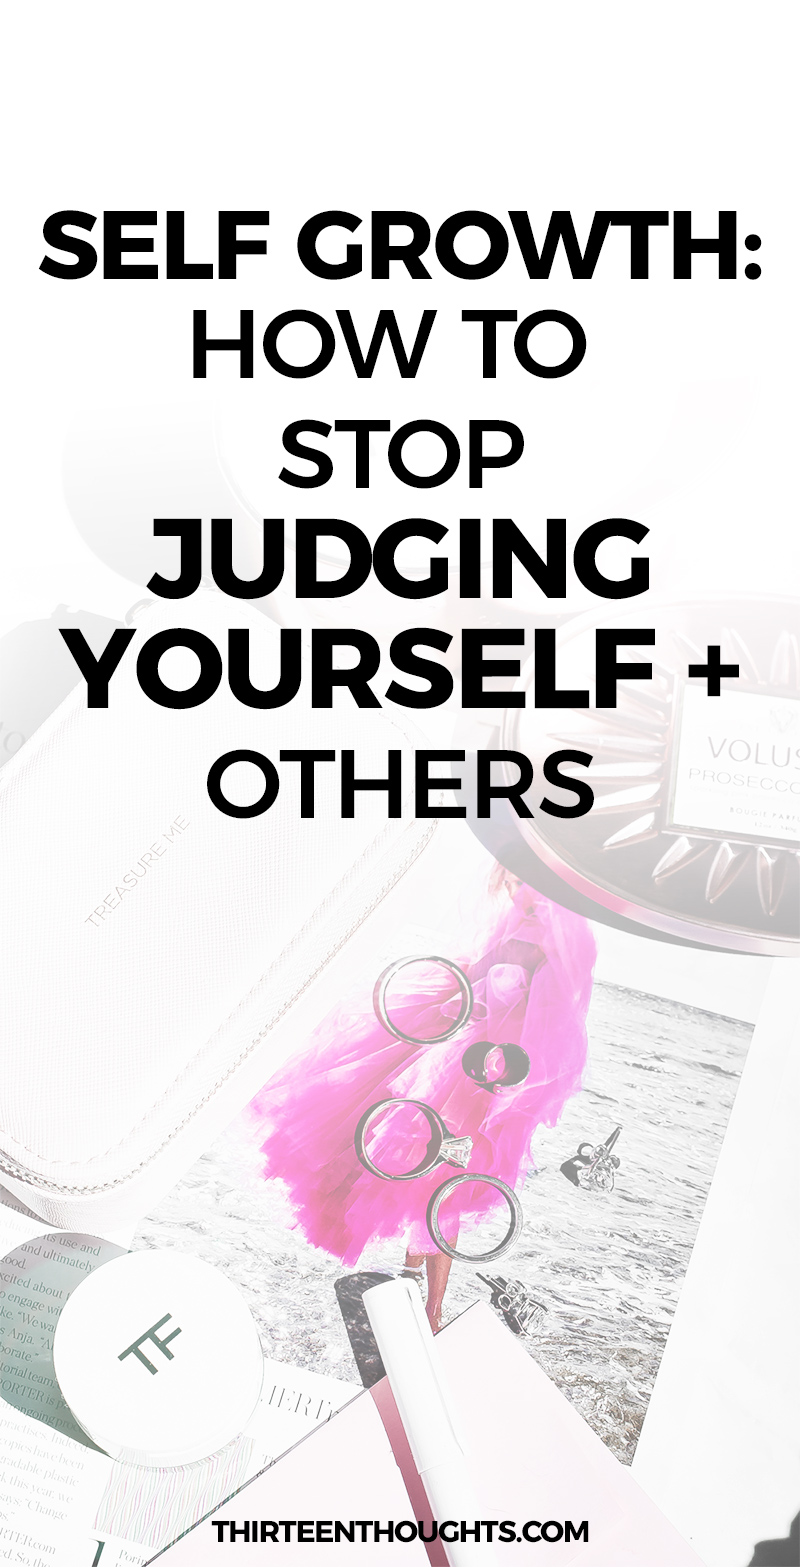 Judging Yourself: How to Judge Yourself Less